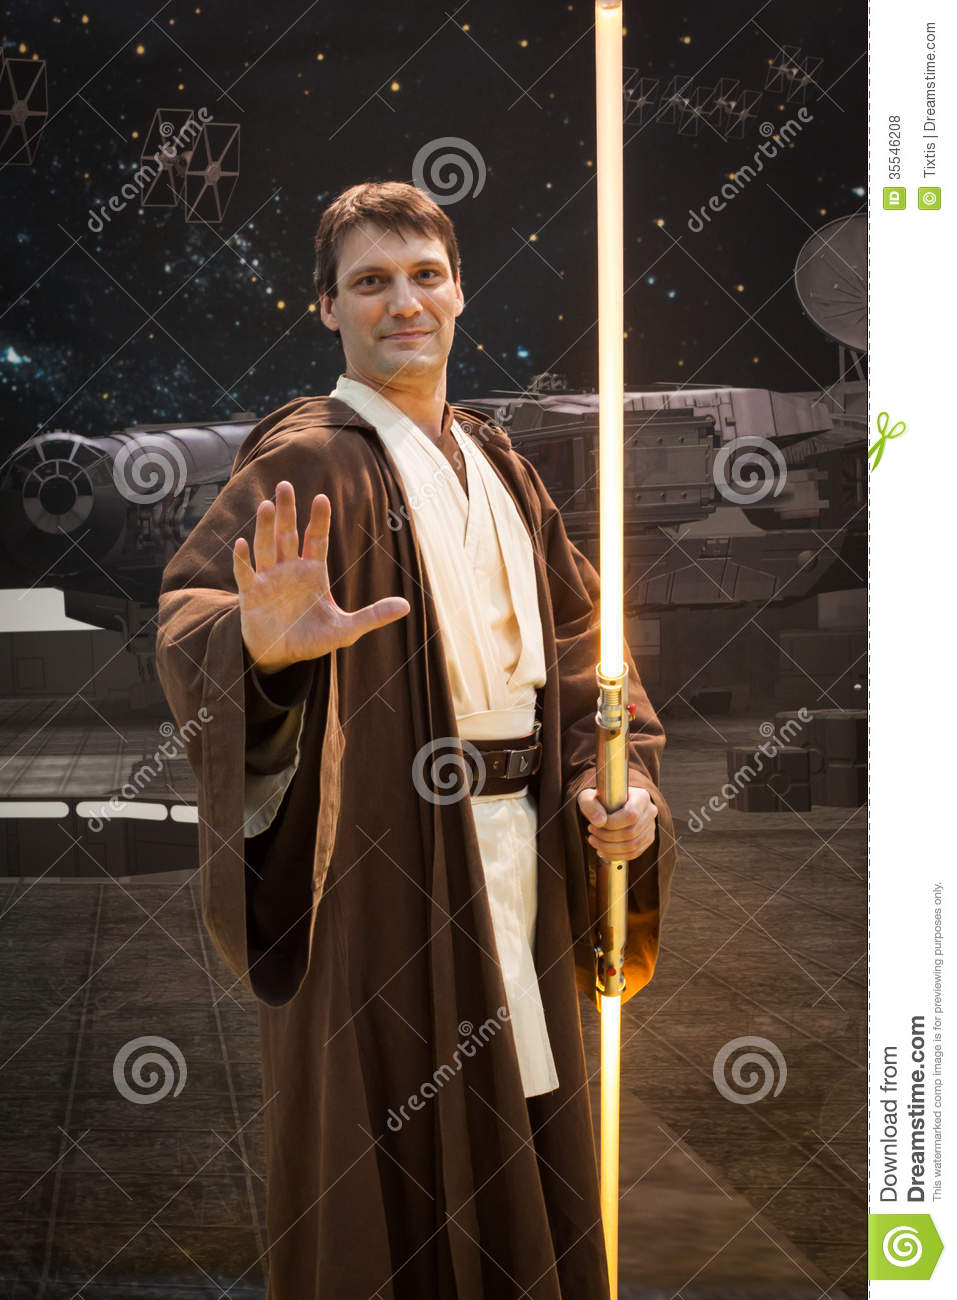 X Exhibition Stand : Jedi cosplay at g come giocare in milan italy editorial